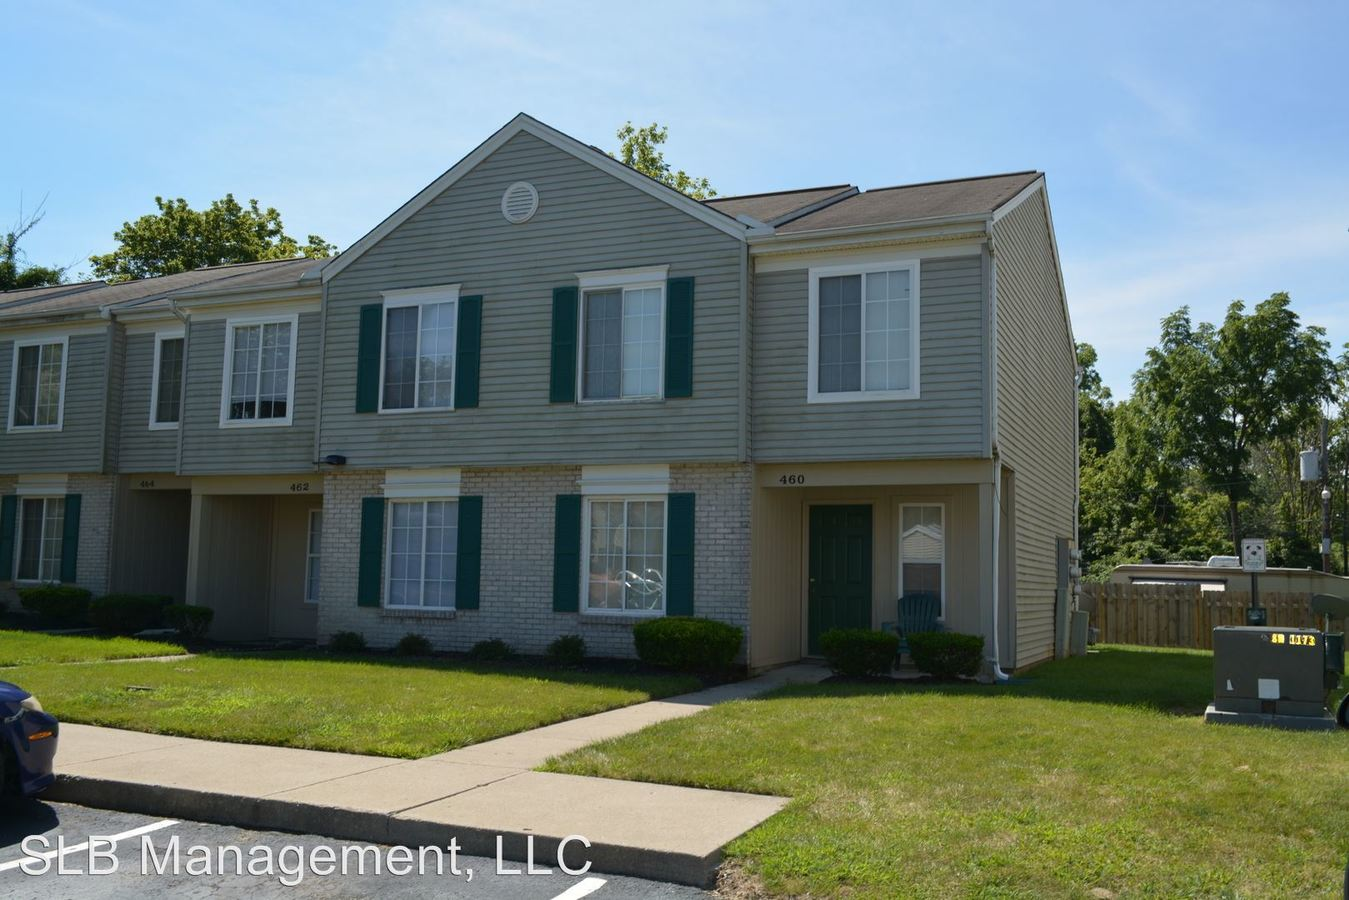 2 Bedrooms 2 Bathrooms Apartment for rent at 240-492 Bavarian Dr in Middletown, OH